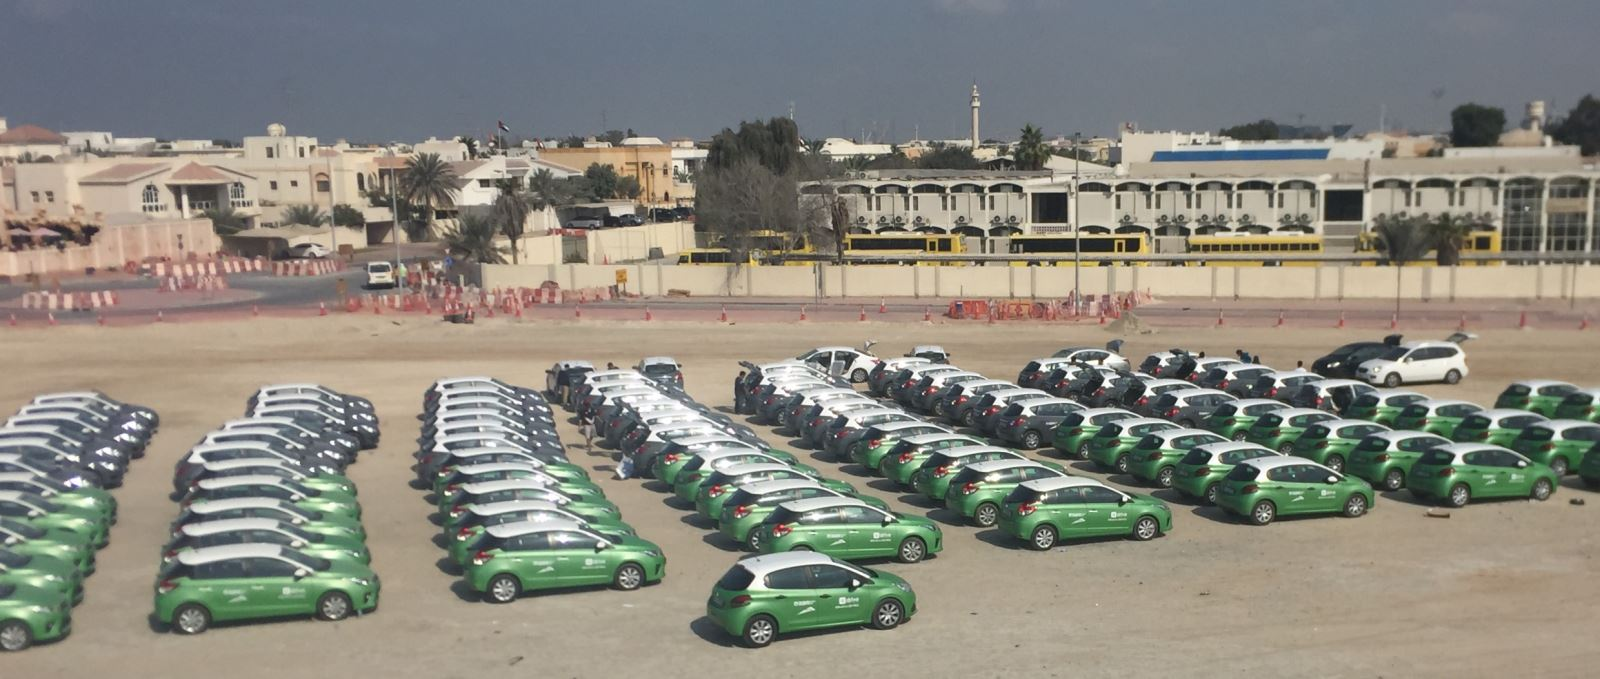 Hourly Car Rental >> Smart Hourly Car Rental Now Launched In Dubai Expatwoman Com